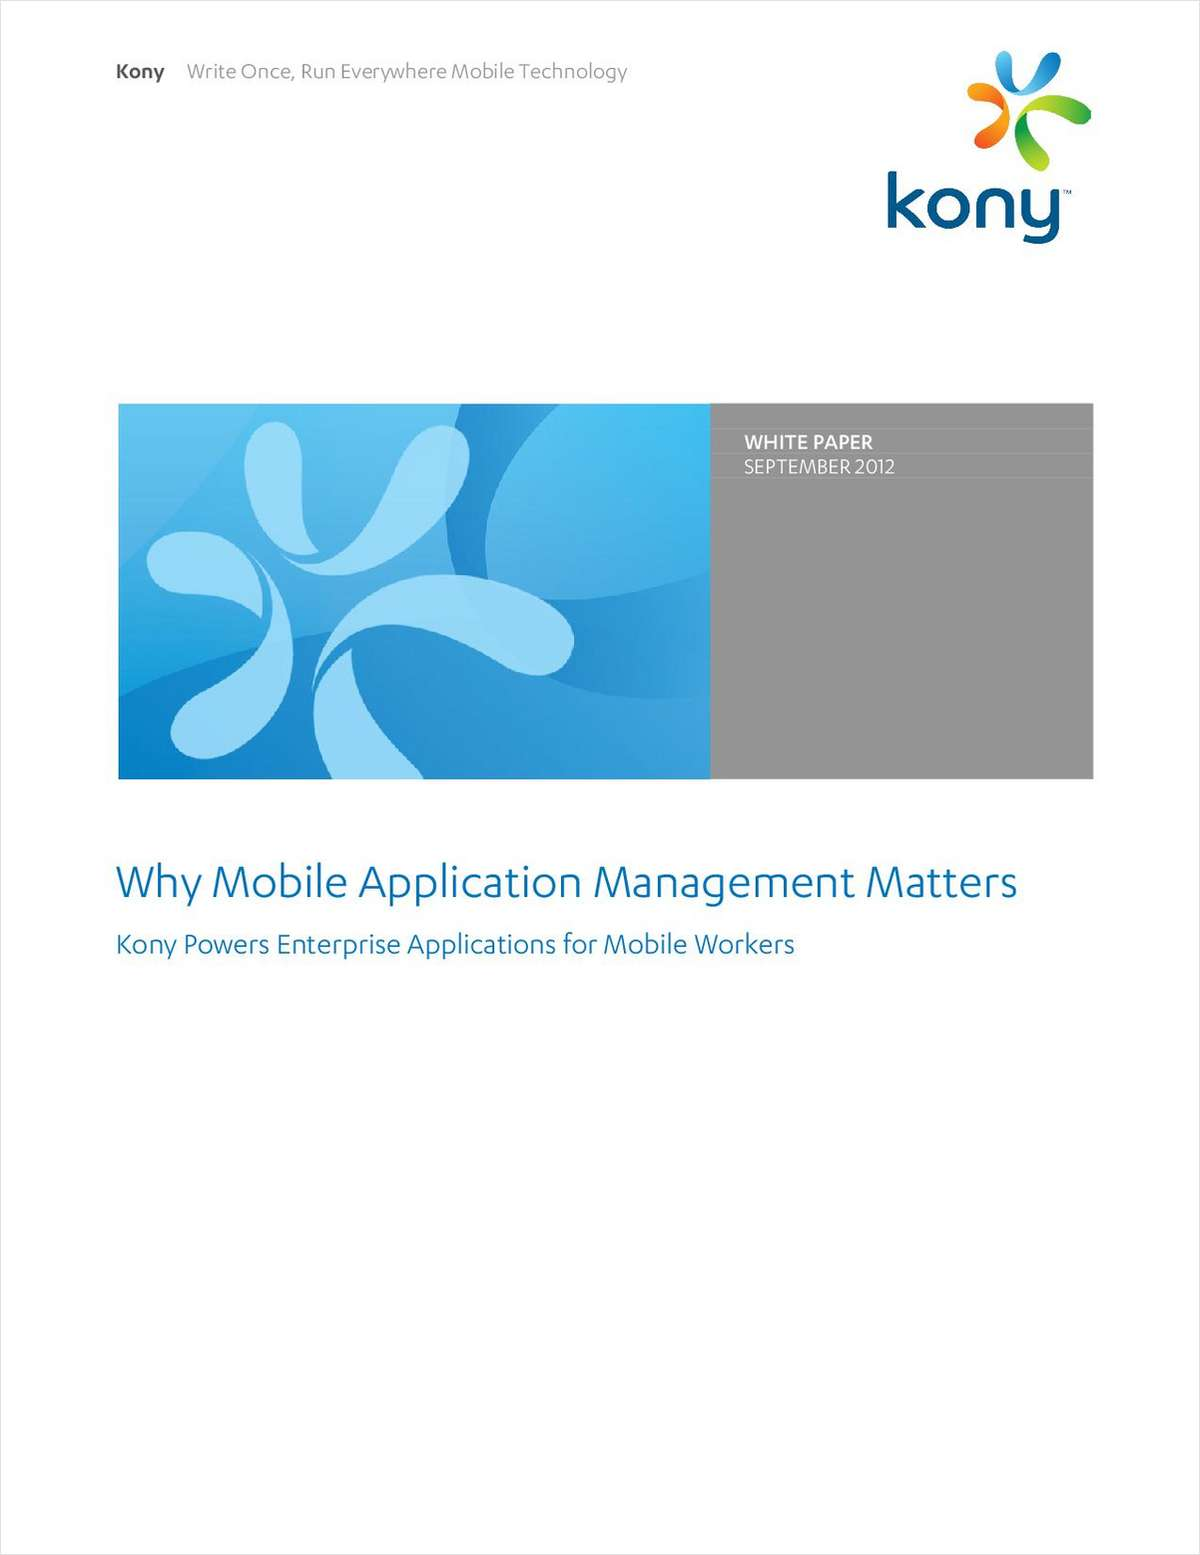 Why Mobile Application Management Matters